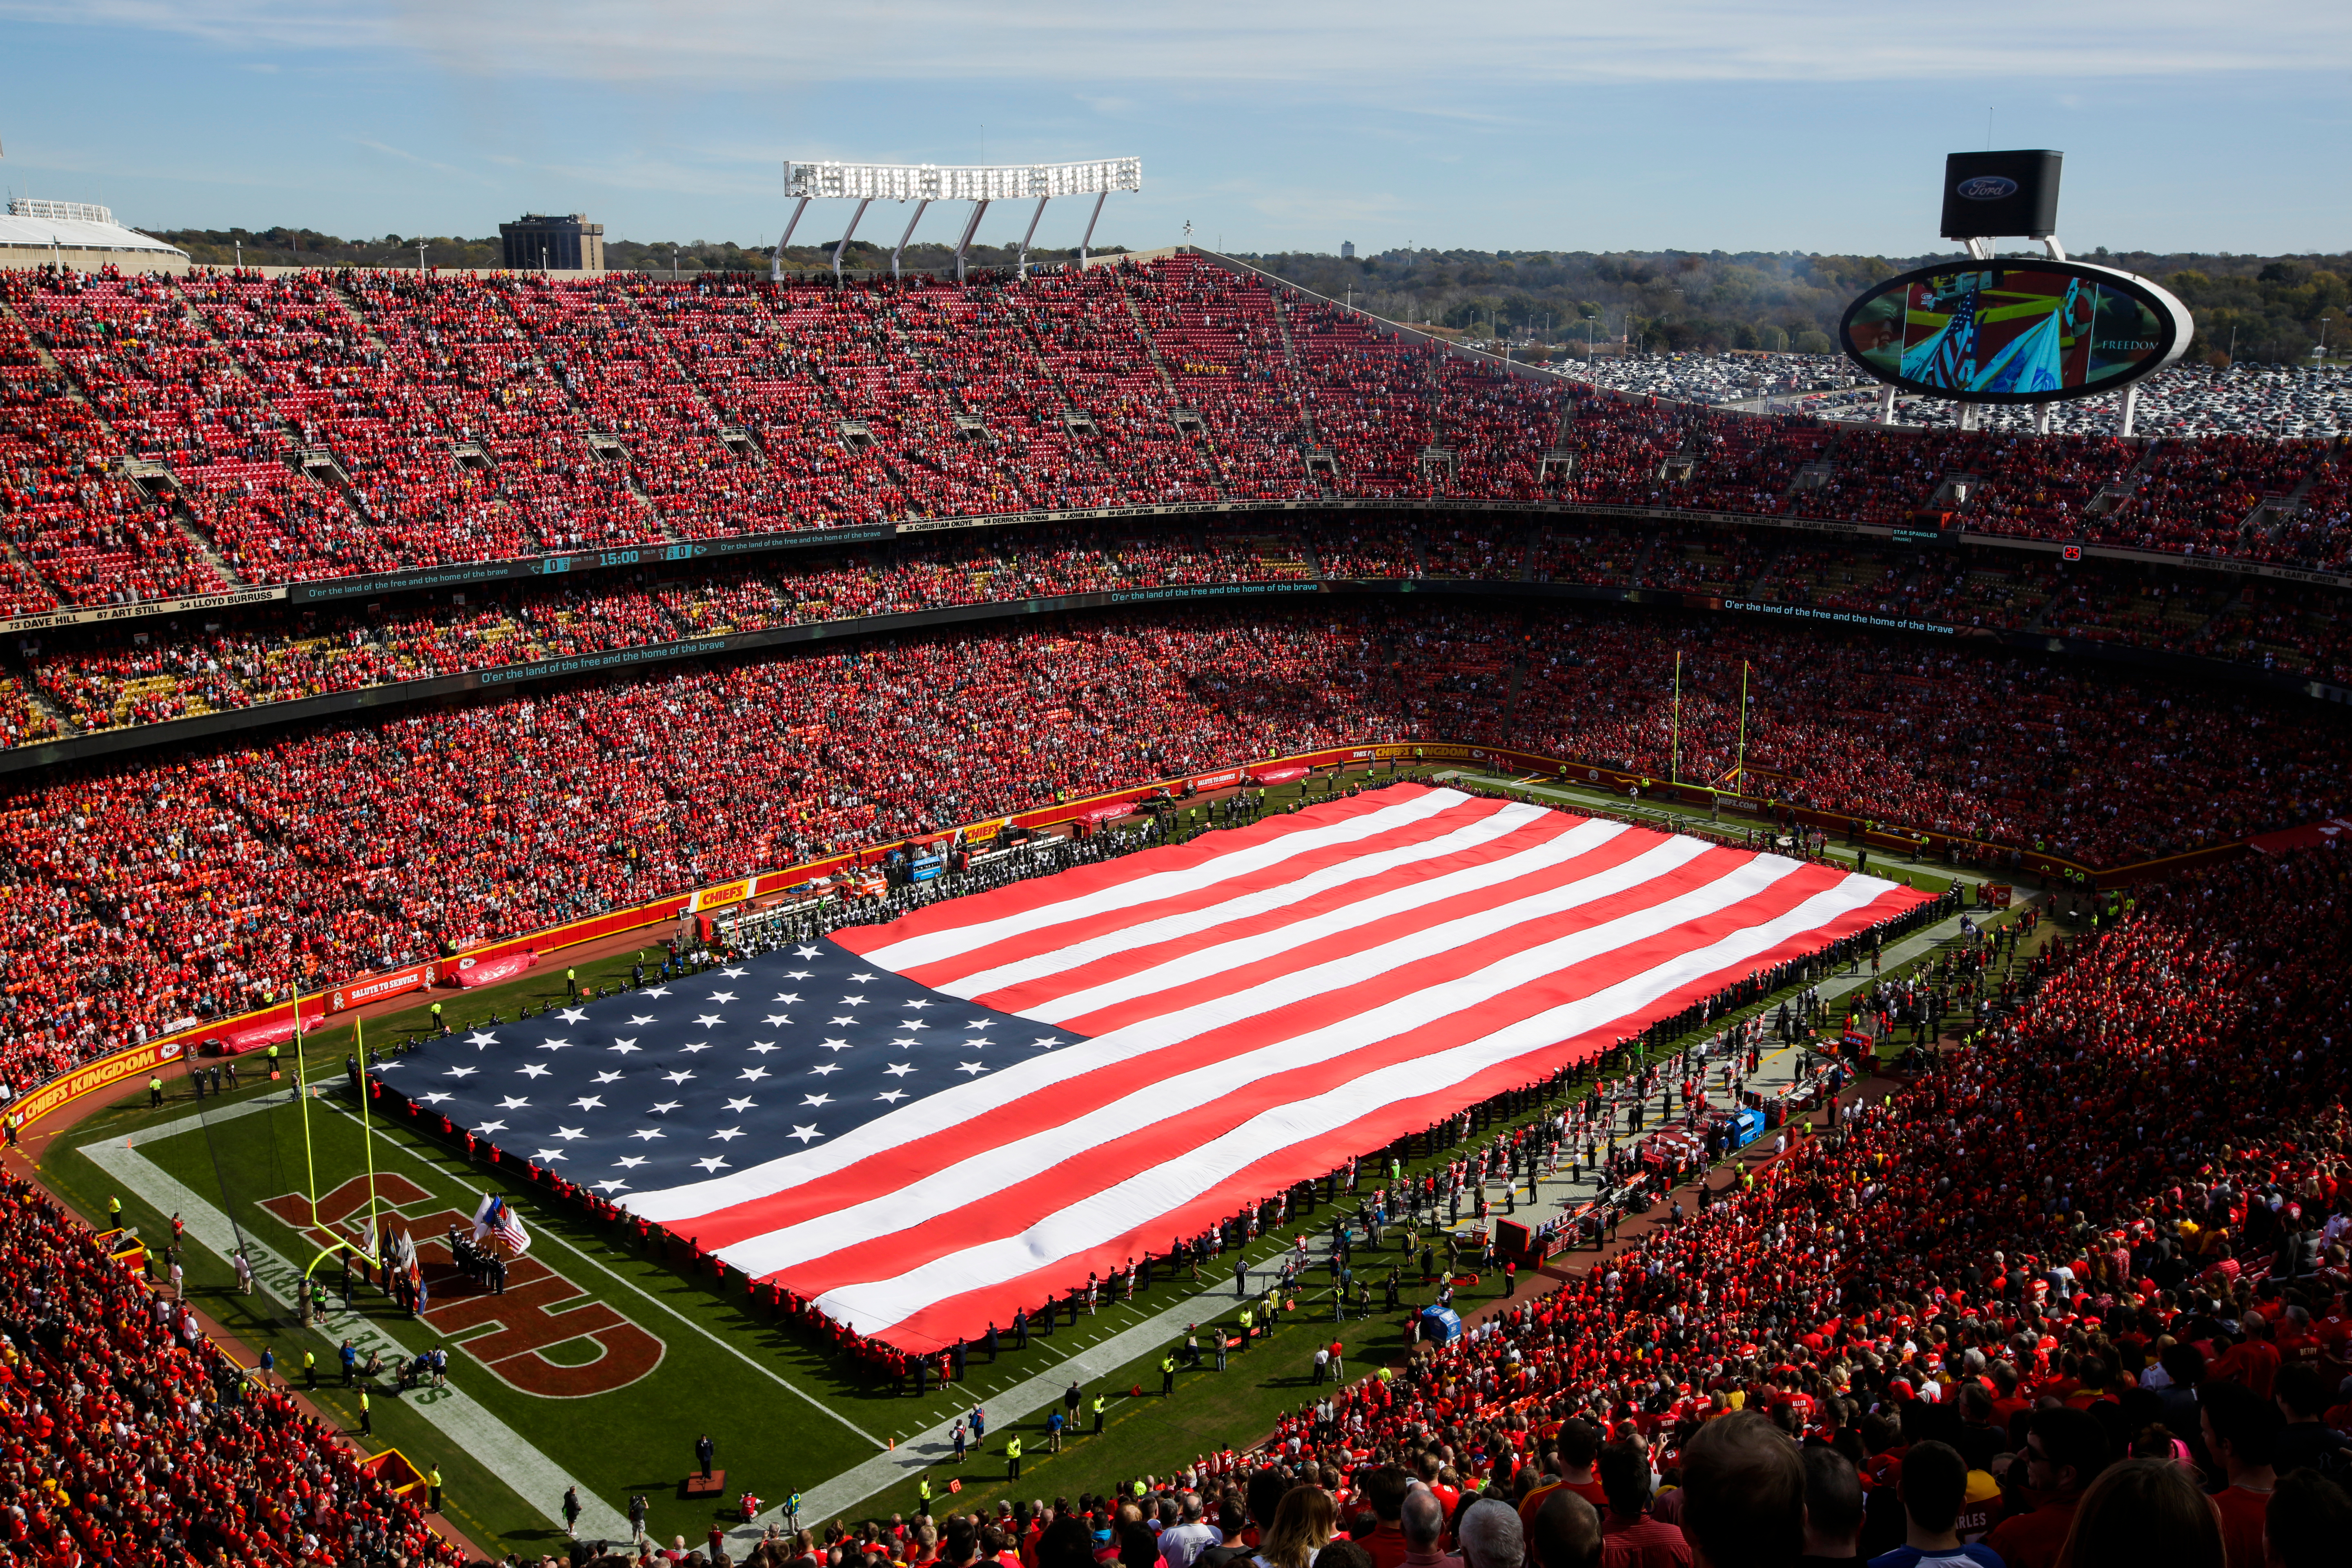 A full field American flag is extended by members of the United States military during the national anthem before the game between the Jacksonville Jaguars and Kansas City Chiefs at Arrowhead Stadium on November 6, 2016 in Kansas City, Missouri. (Jamie Squire—Getty)